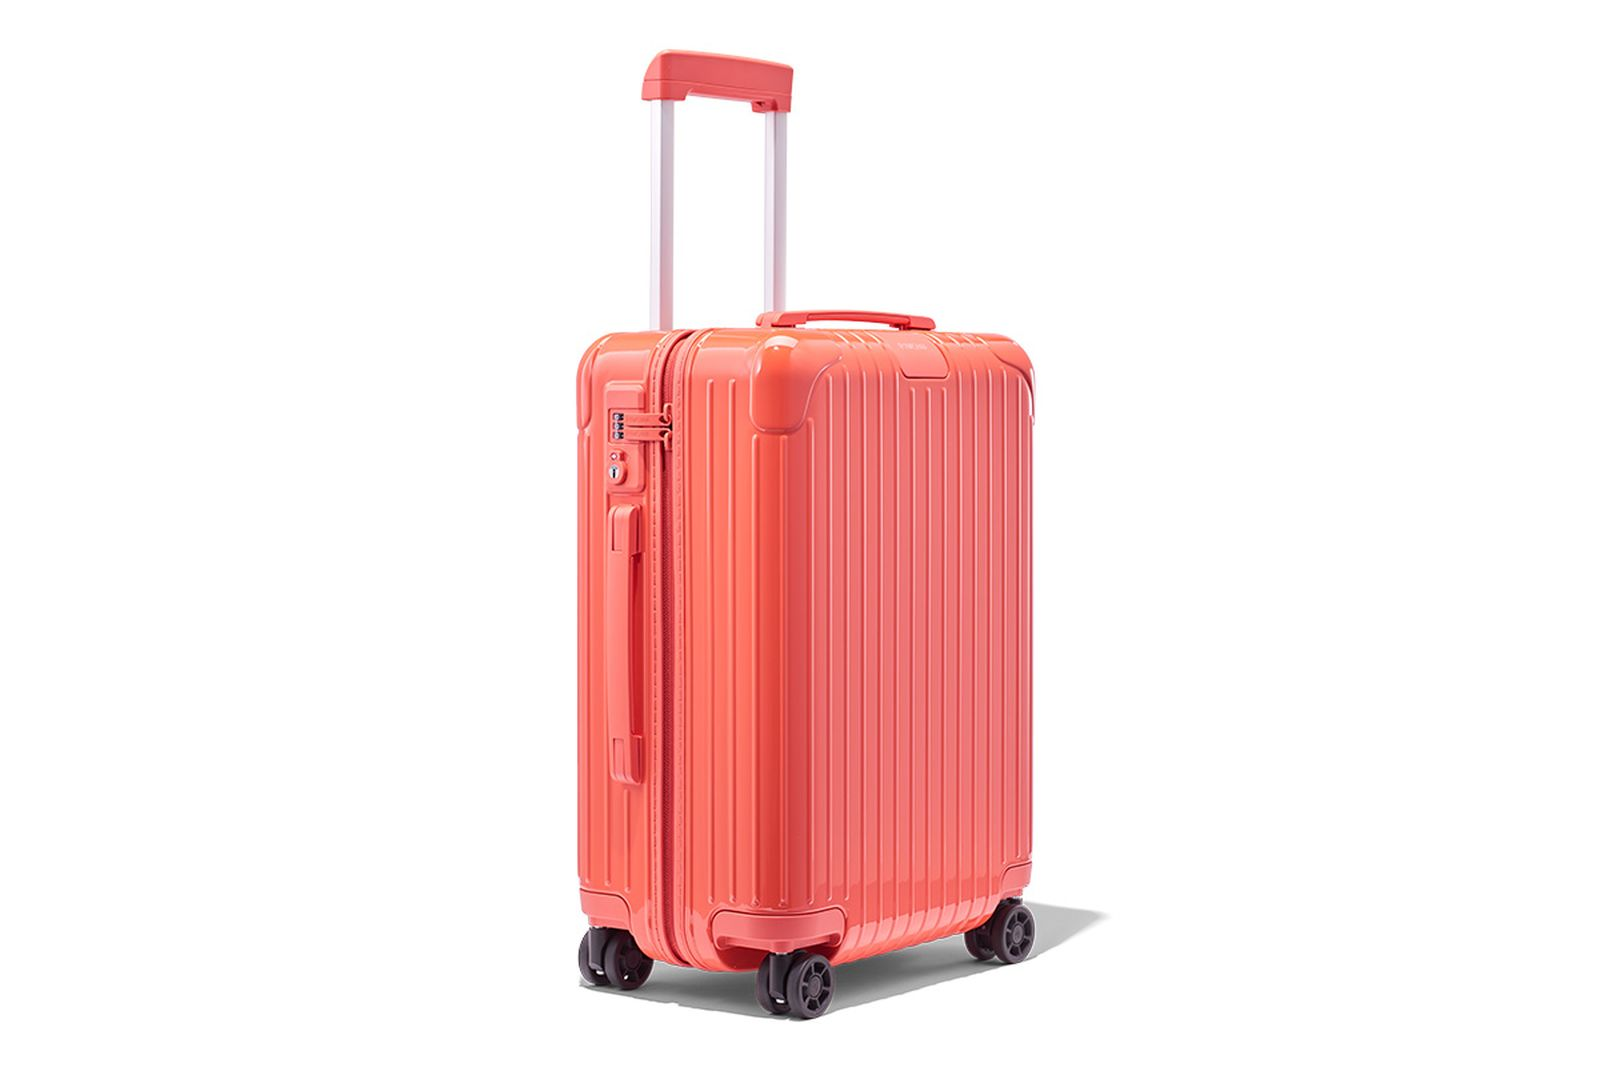 rimowa suitcases summer colors